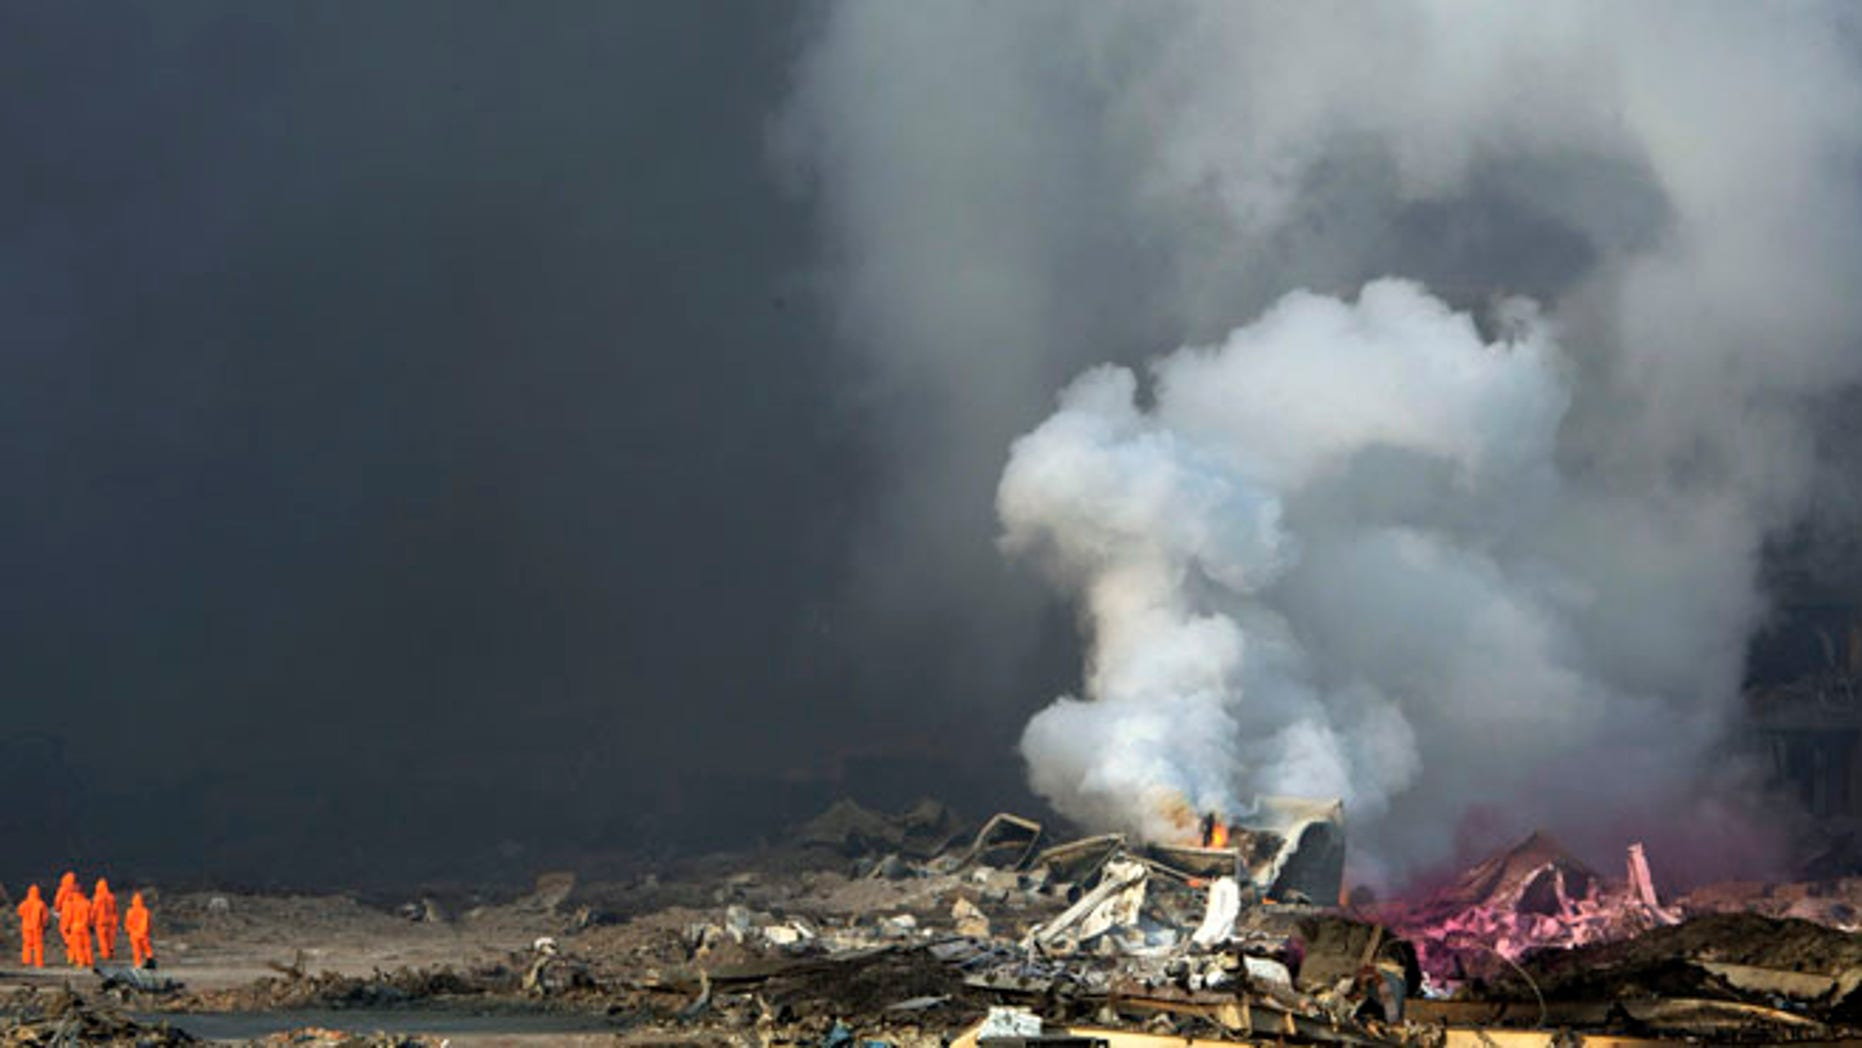 Aug. 13, 2015: Smoke continues to billow out after an explosion at a warehouse in China's Tianjin municipality.